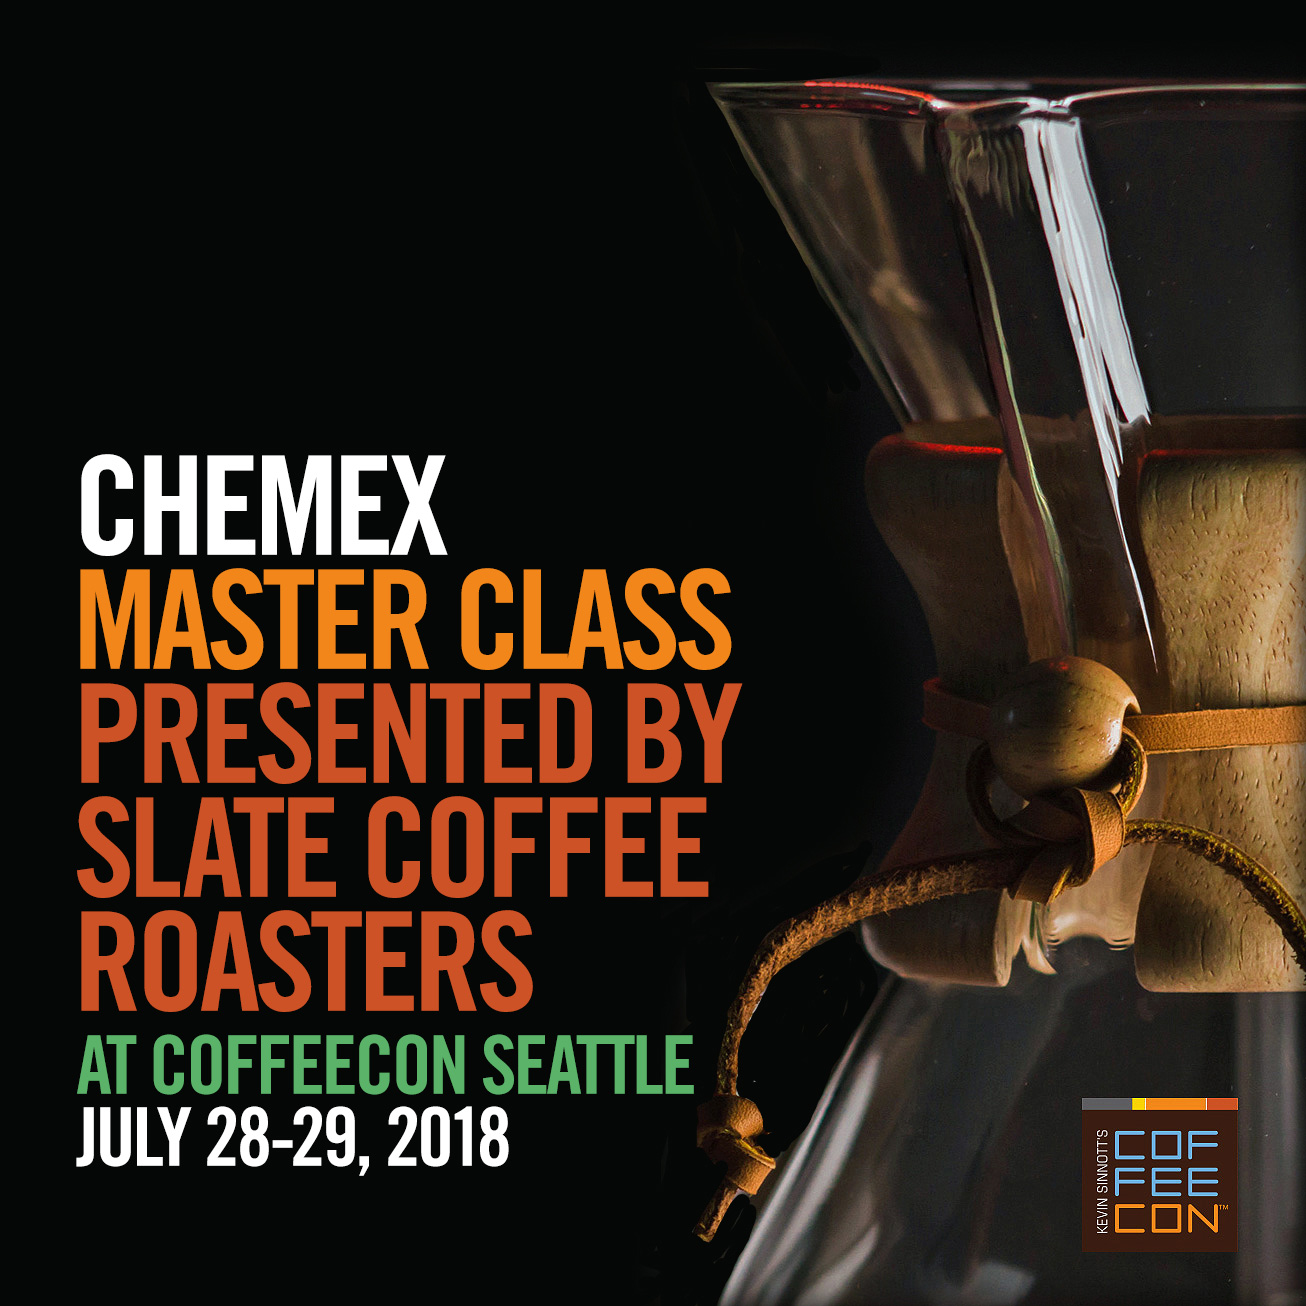 Chemex Master Class with Slate Coffee Roasters